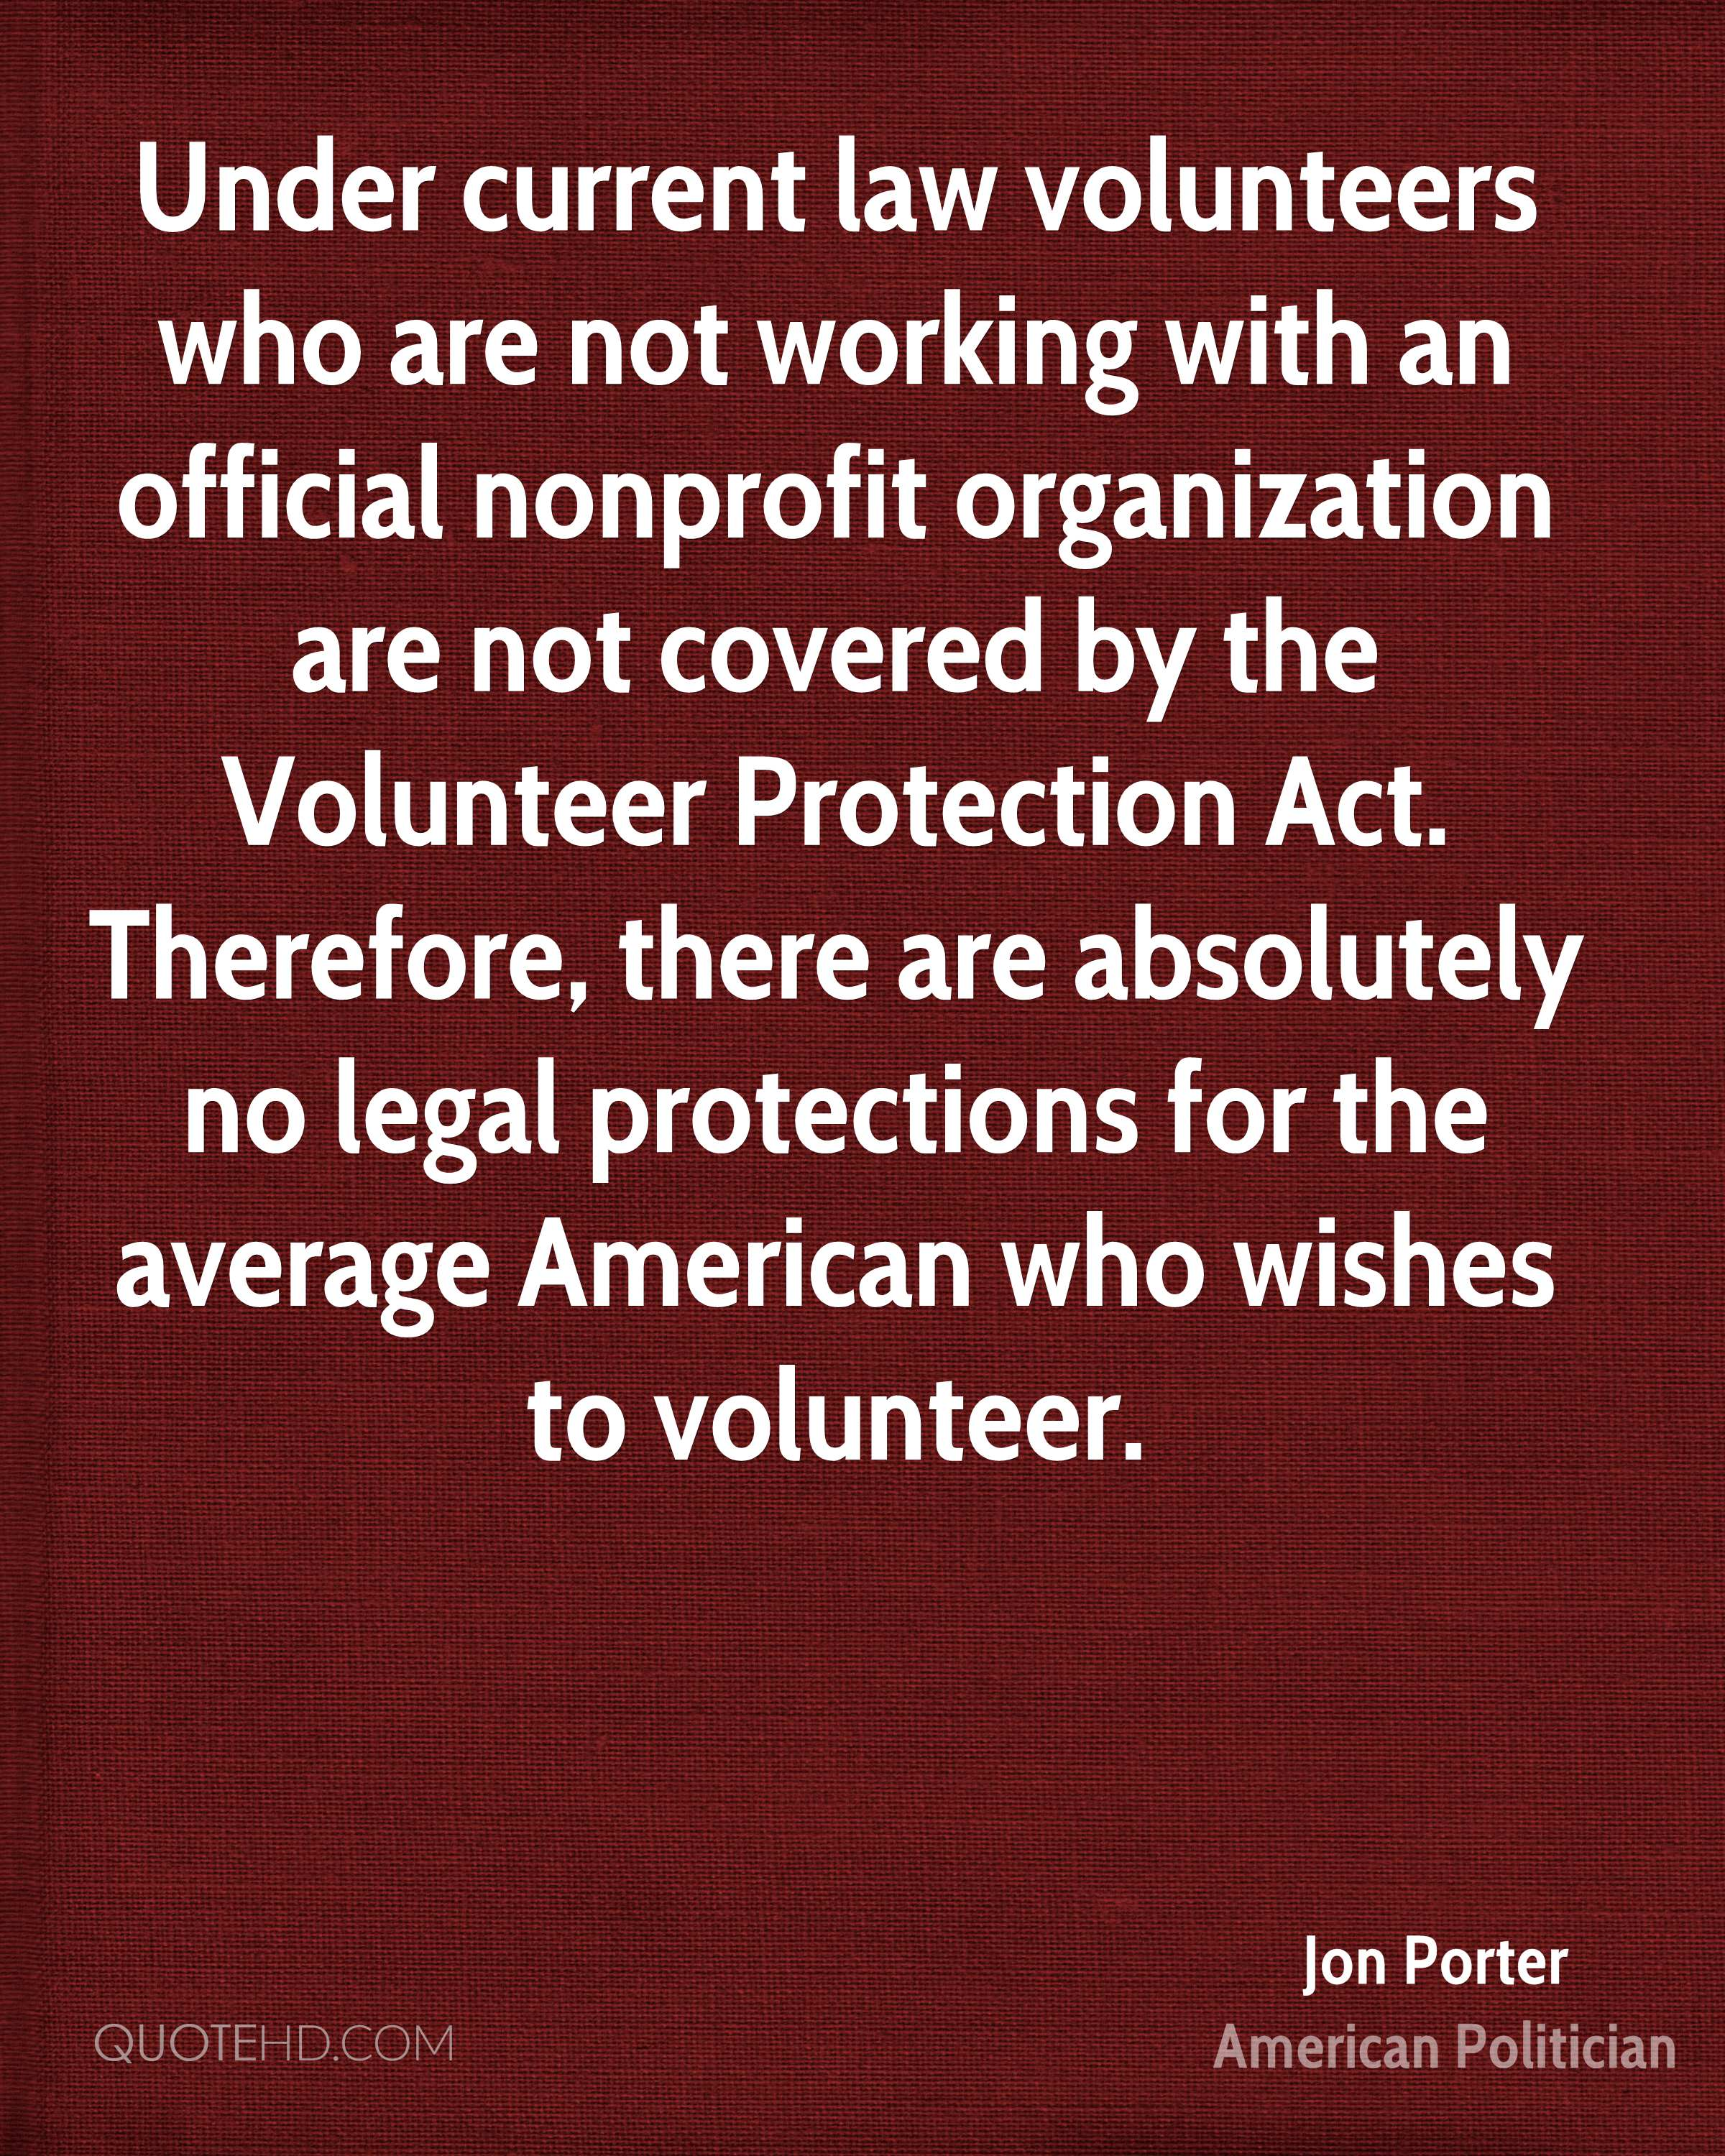 Under current law volunteers who are not working with an official nonprofit organization are not covered by the Volunteer Protection Act. Therefore, there are absolutely no legal protections for the average American who wishes to volunteer.